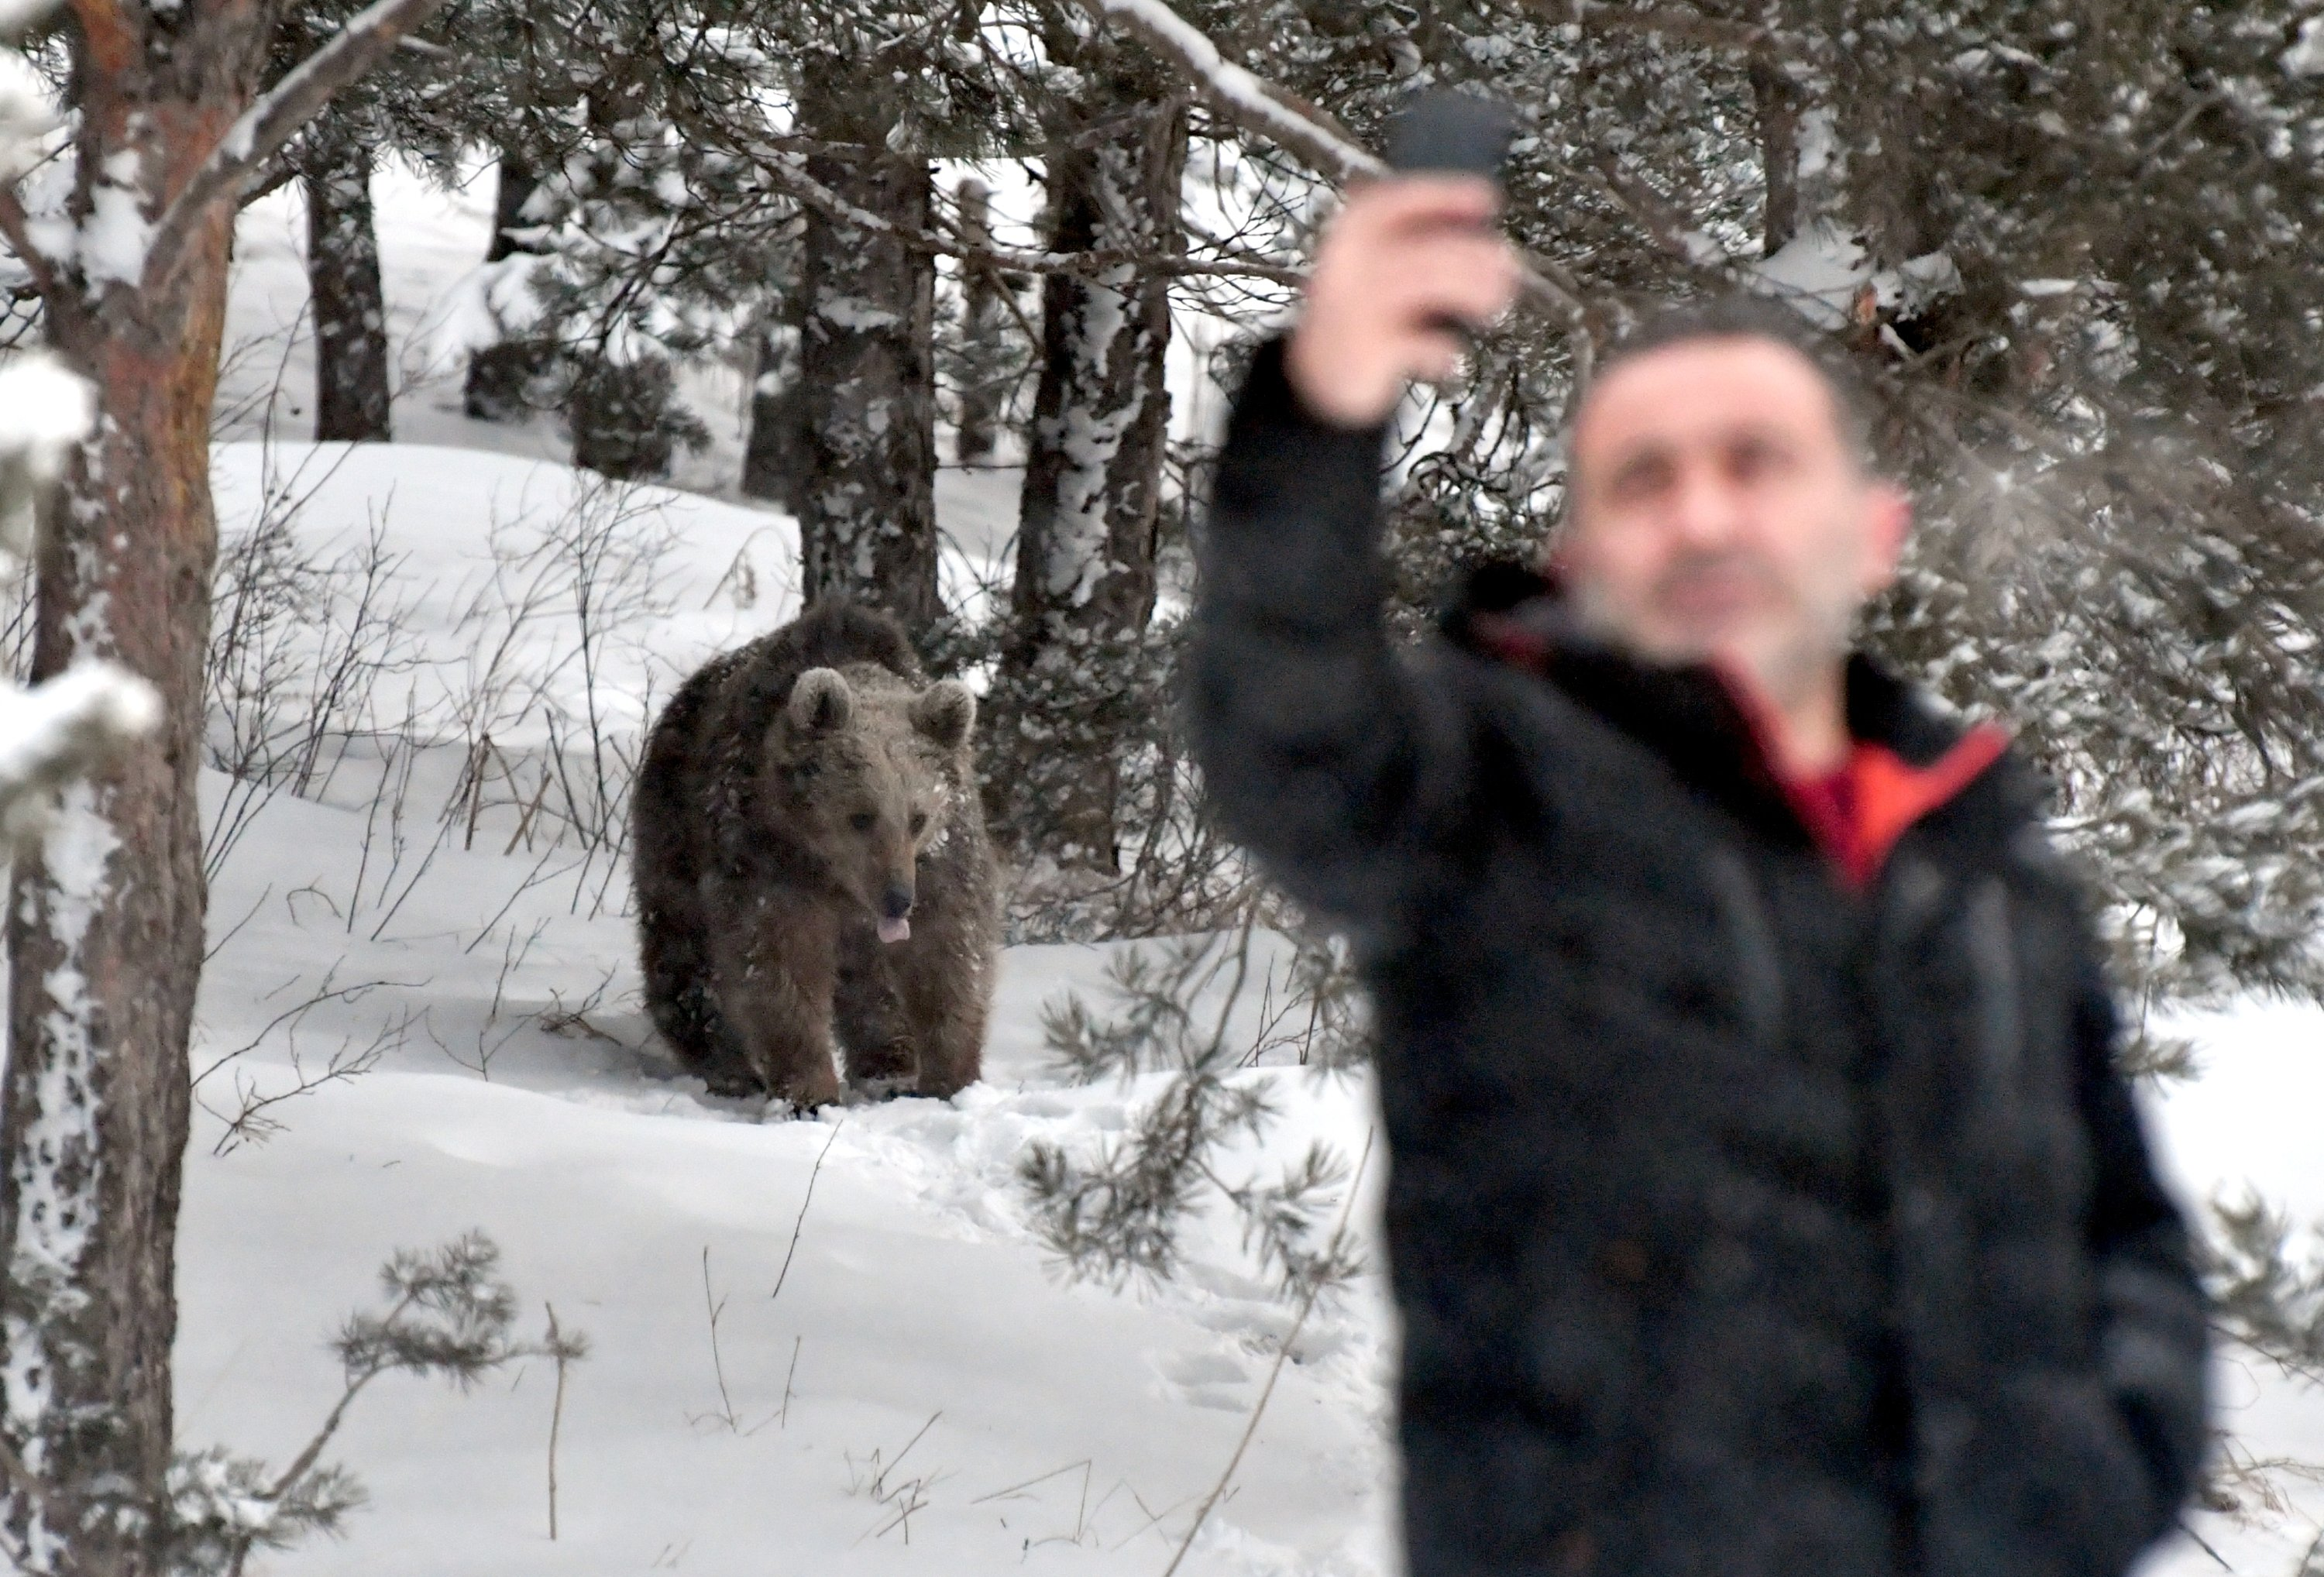 A man takes a selfie while a grizzly bear walks on grass blanketed with snow in the background in woods near Kars, northeastern Turkey, March 29, 2021. (AA Photo)